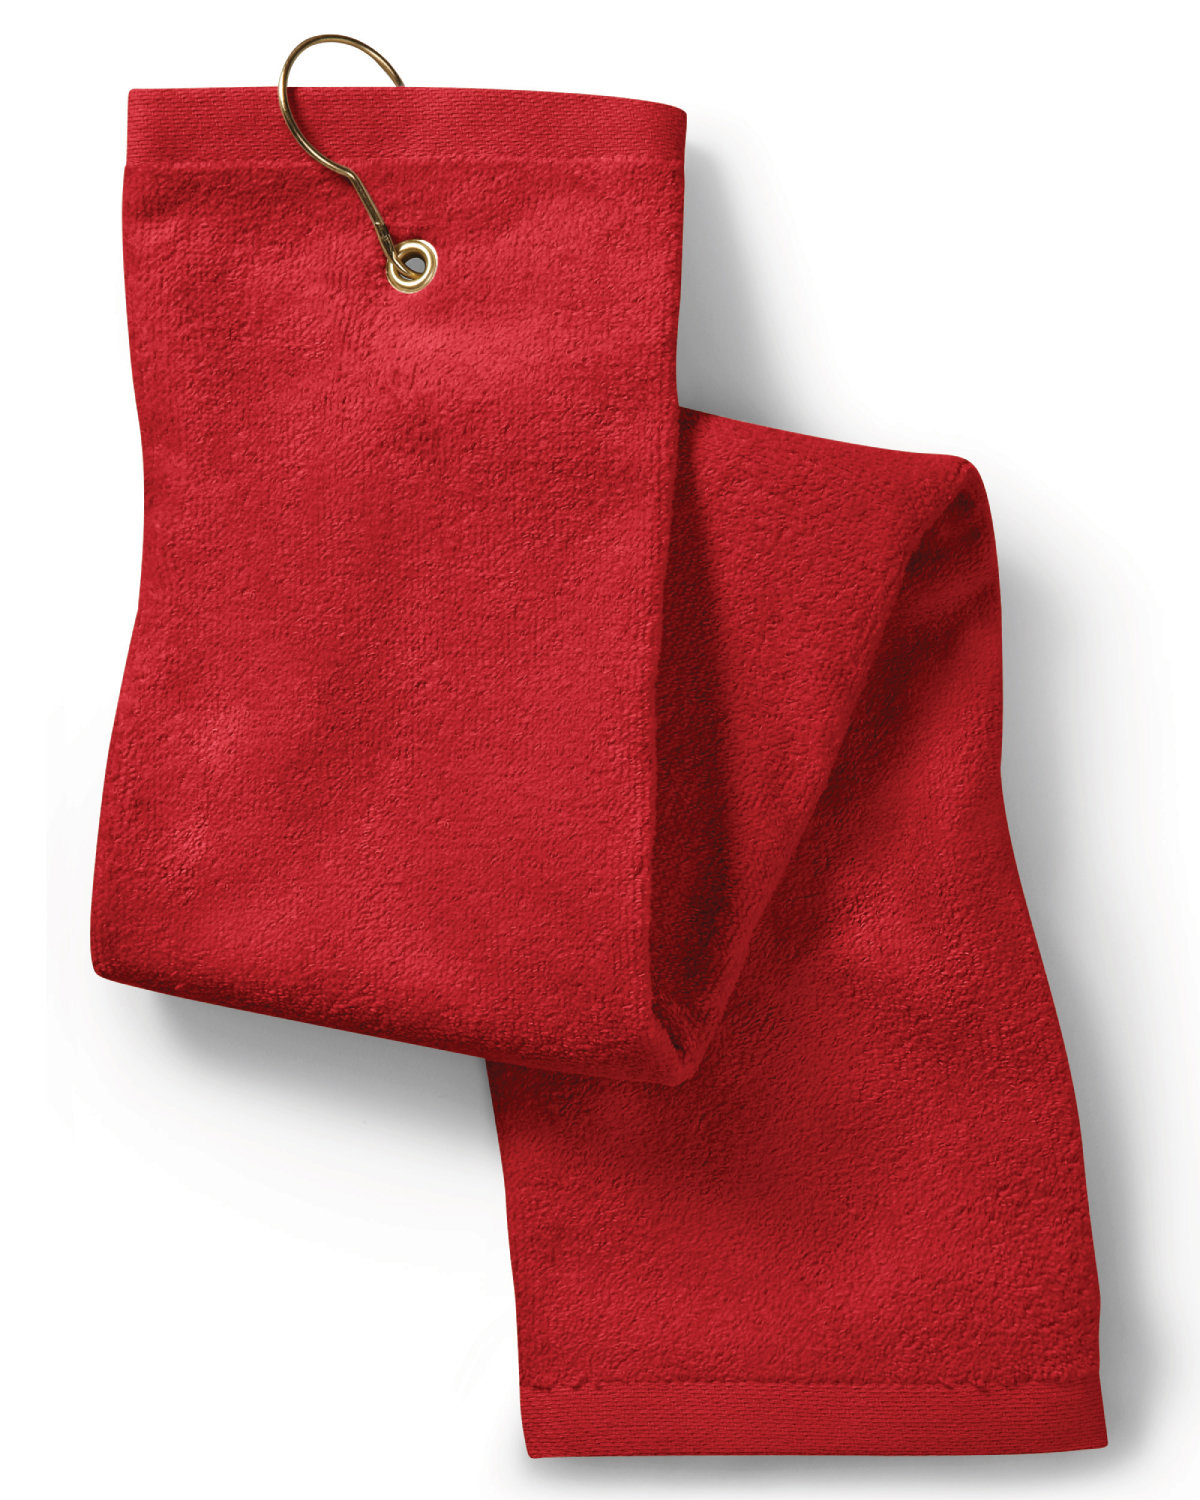 Towels Plus Deluxe Tri-Fold Hemmed Hand Towel with CenterGrommet and Hook RED